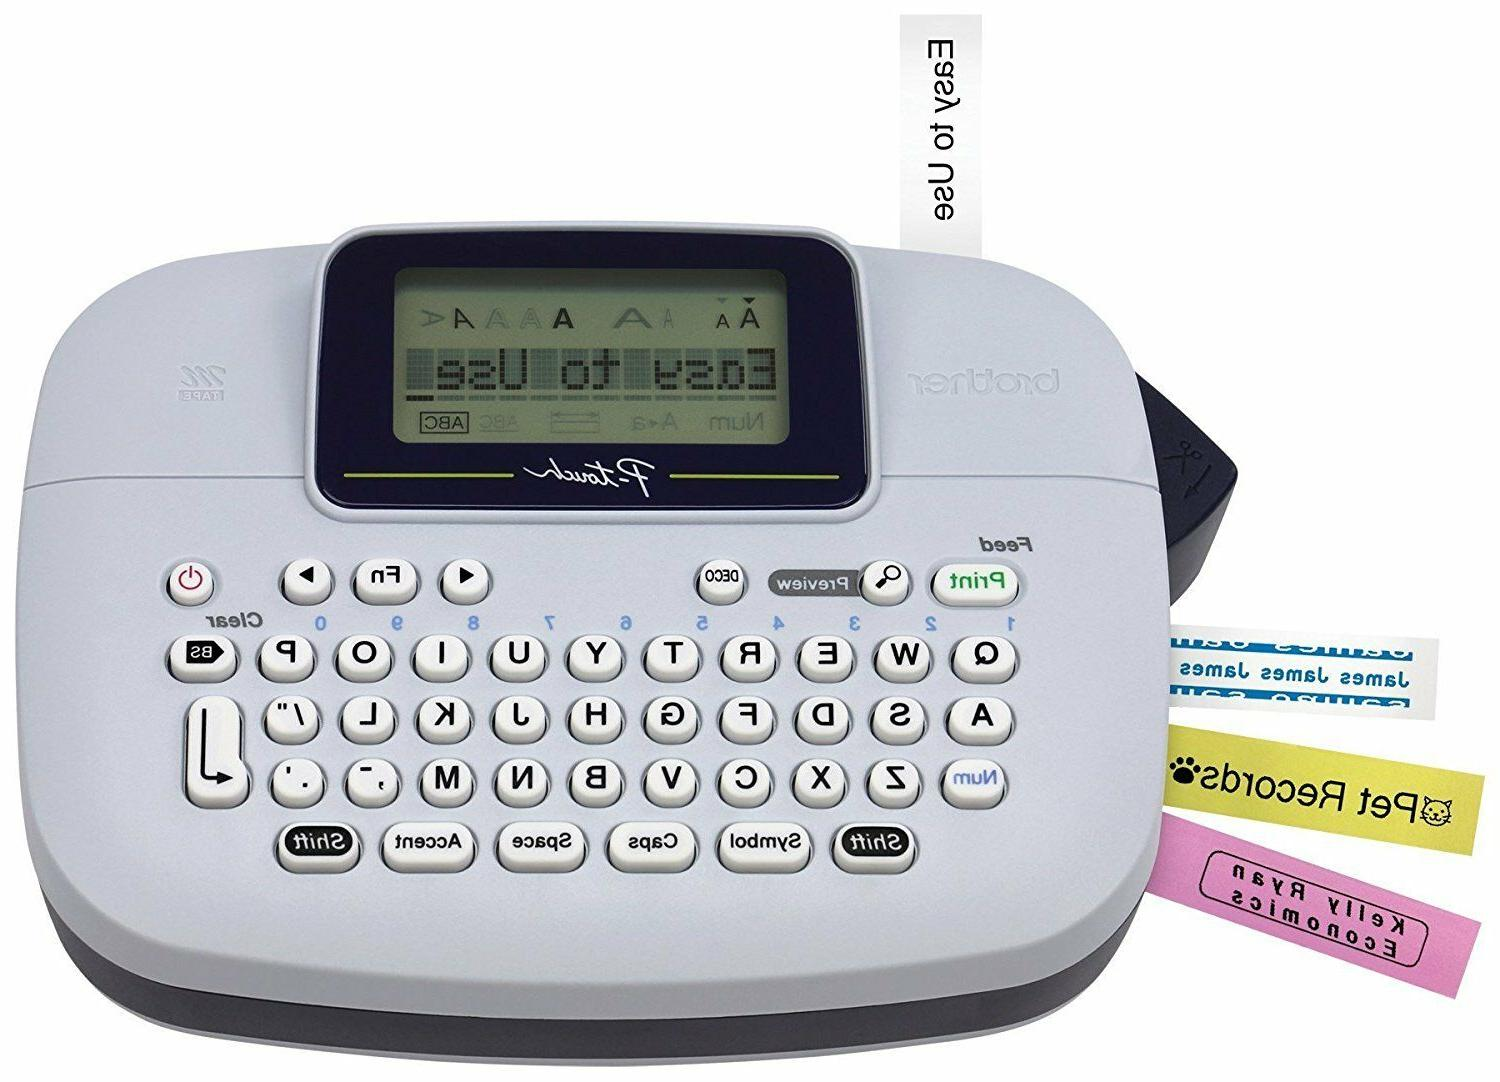 new ptm95 p touch handy label maker